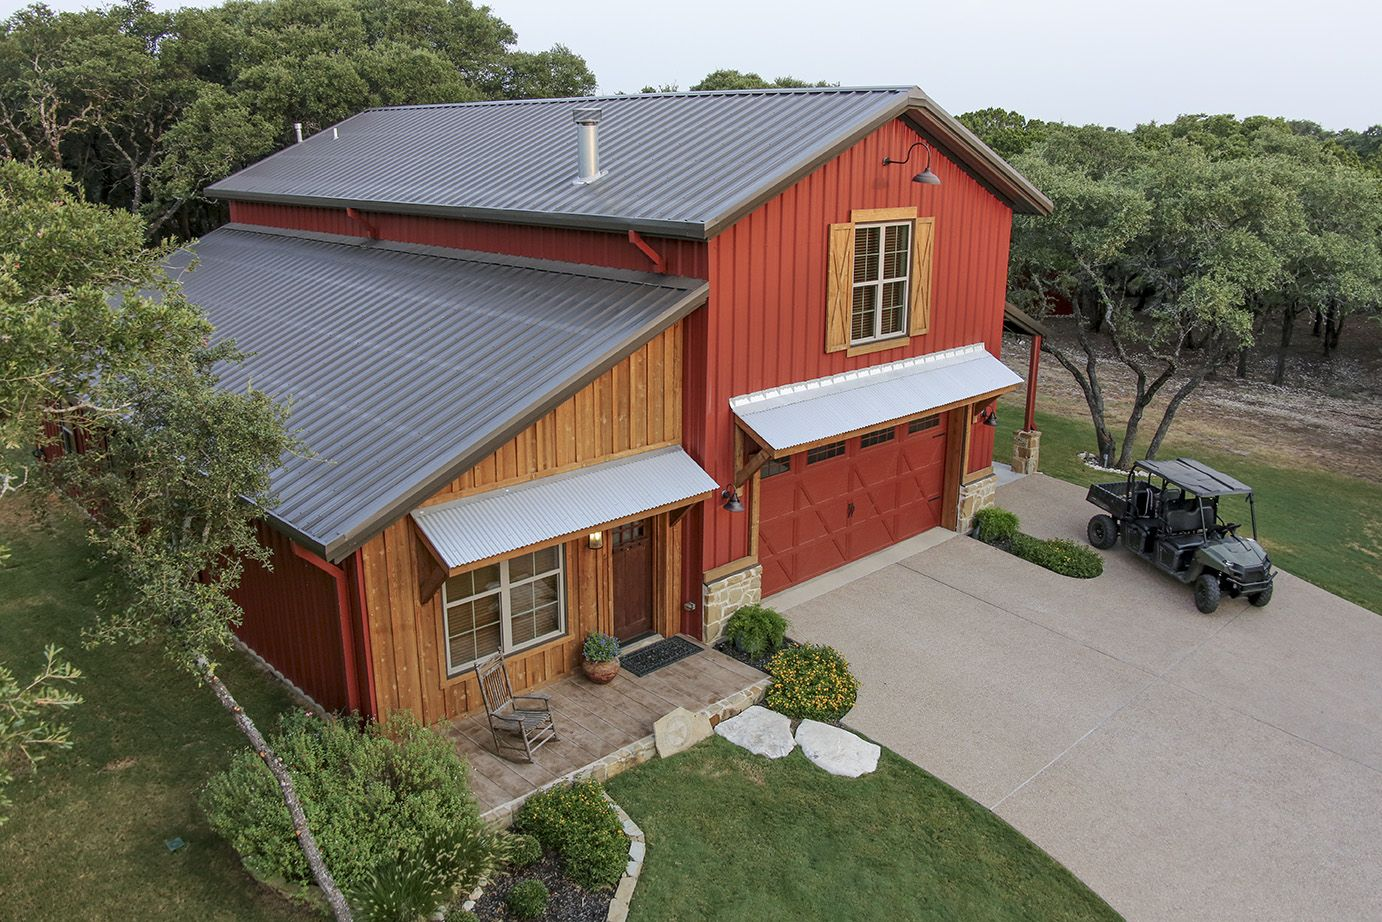 Steel Building Gallery - Category: Custom Building_37 - Image: Custom_37_1  | Mueller Inc | Metal building homes, Metal barn homes, Pole barn homes